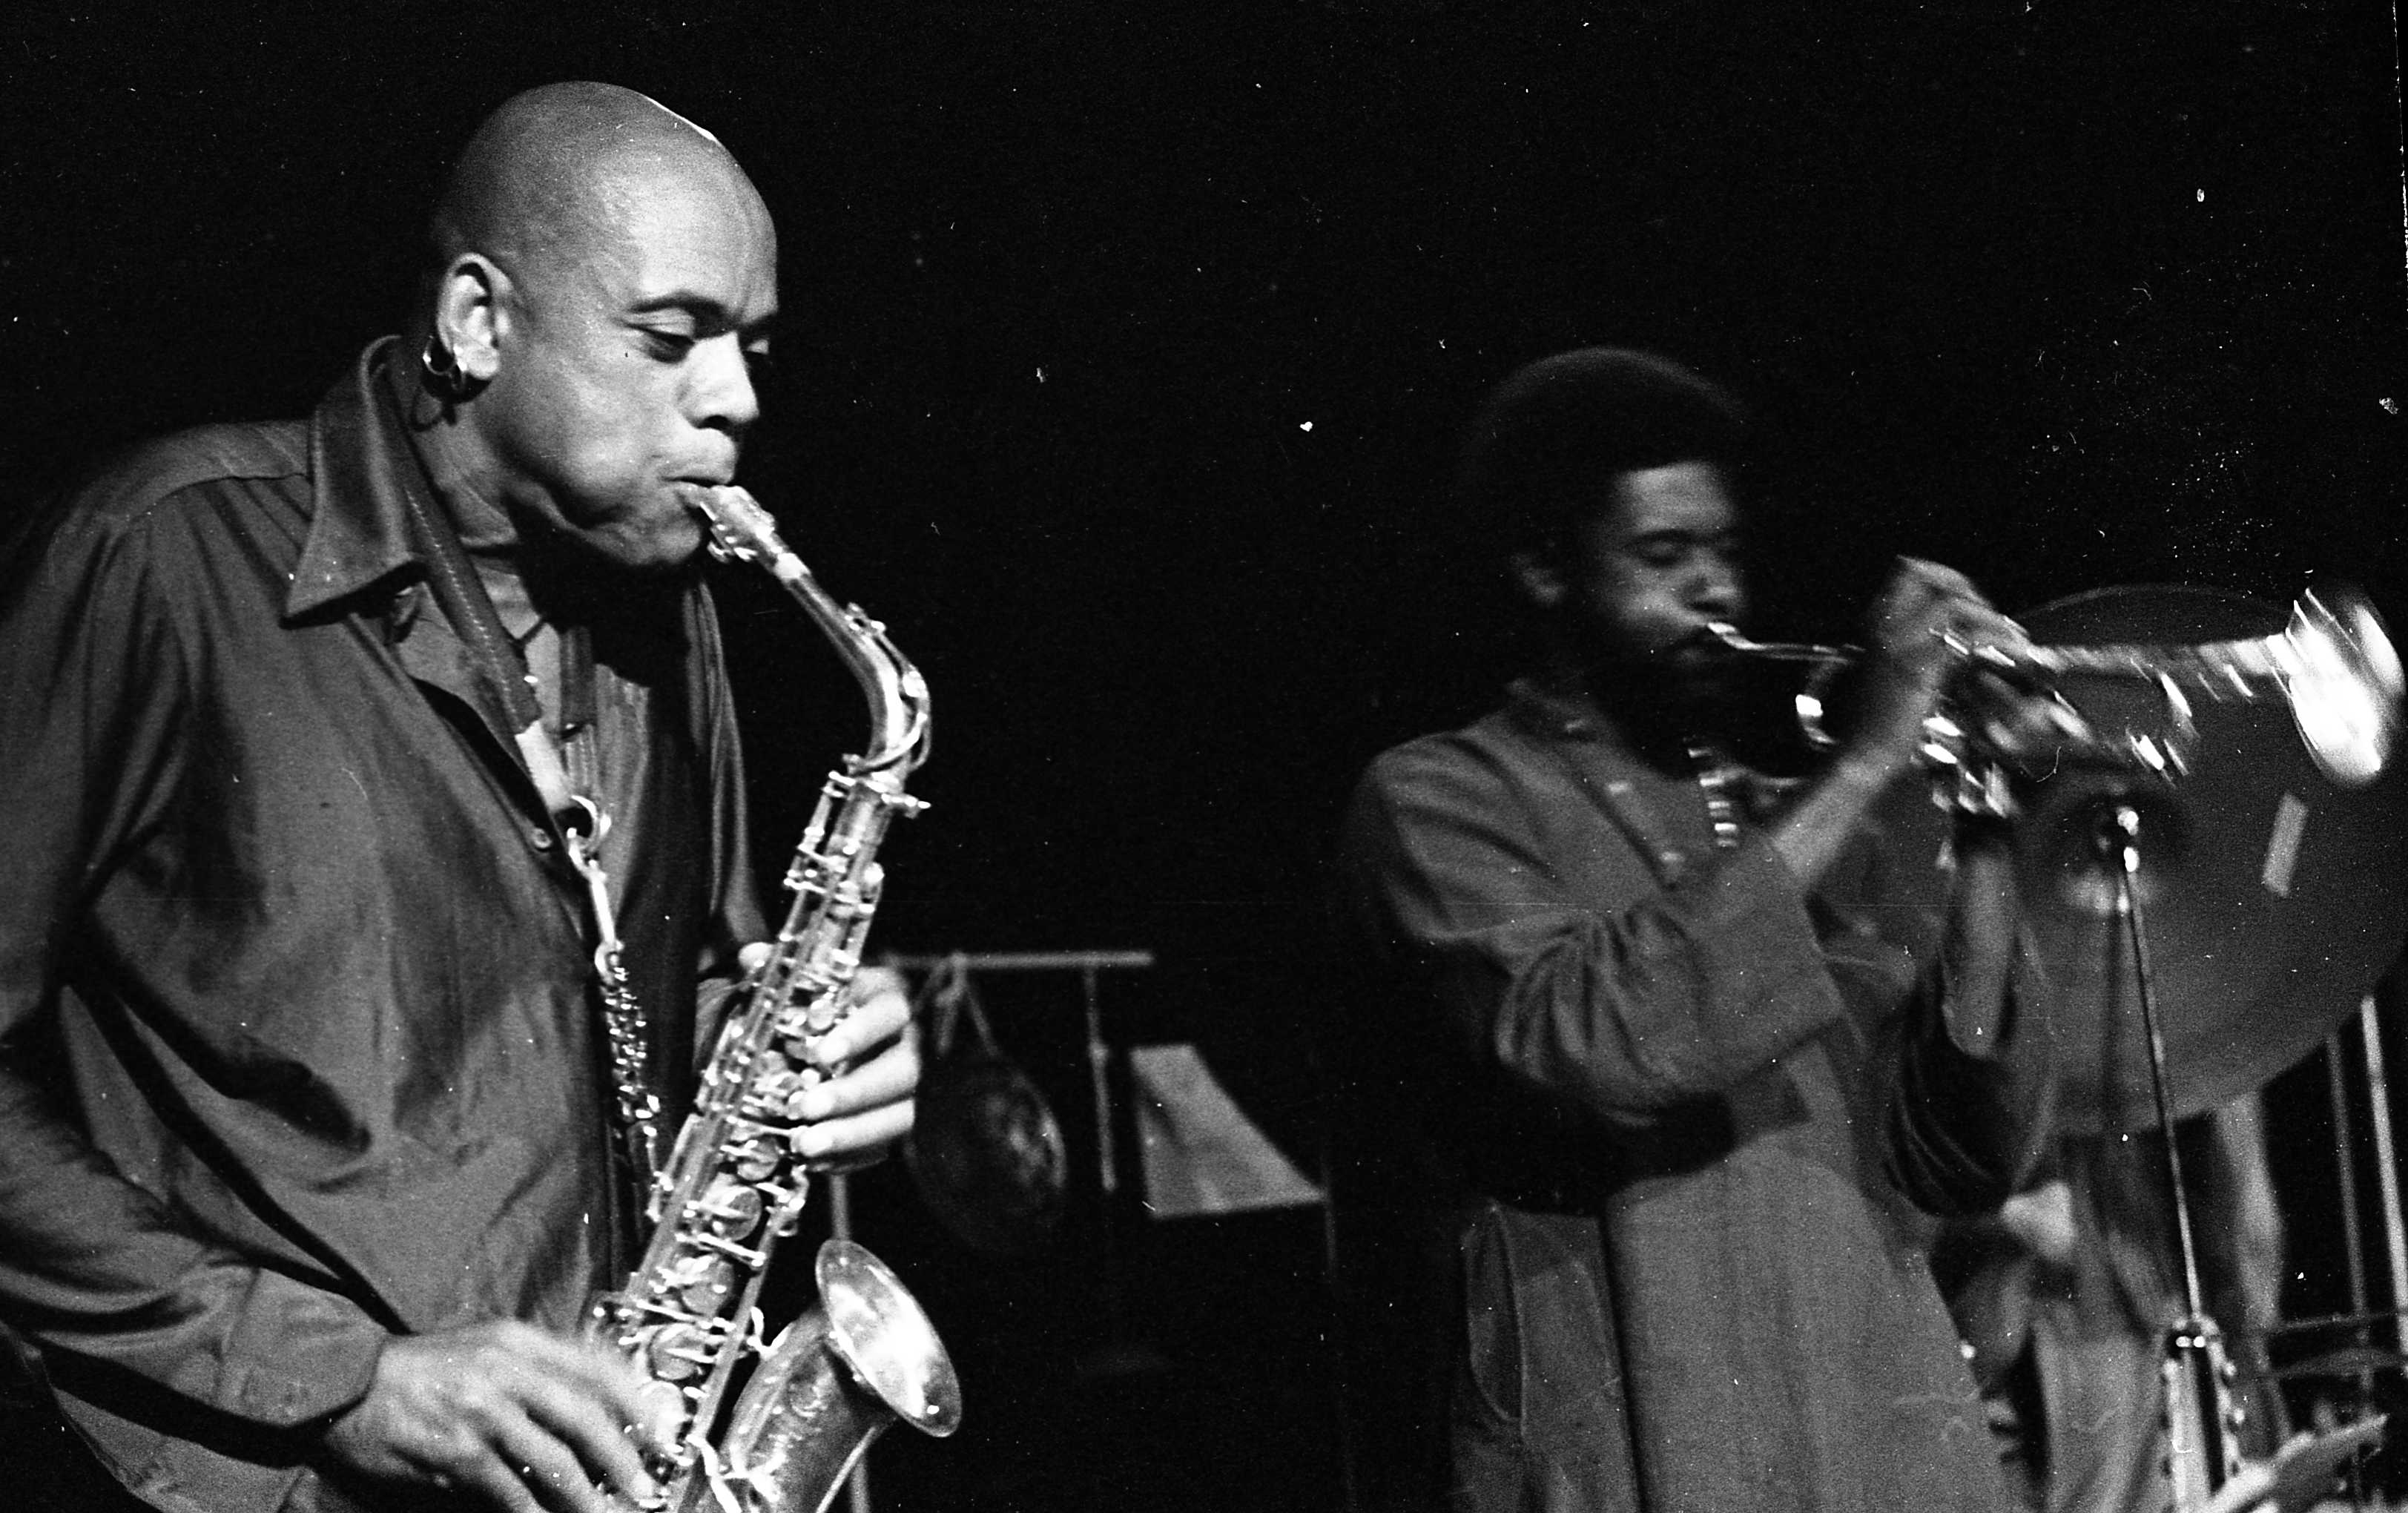 "This is a rare shot of what Julius called The Janus Company -- a trio of Julius Hemphill (alto saxophone, maybe flute), Baikida EJ Carroll (trumpet), and my brother Alex on drums. They played a mere handful of concerts in the U.S. -- in Los Angeles (seen here at the Century City Playhouse), in Berkeley at a place called Mapenzi, and later in Philadelphia (at The Foxhole maybe?) with Abdul Wadud added on 'cello. I think this photo may portray the first gig Alex ever did with Julius. As was often the case, when someone asked creator/curator of the concert series Lee Kaplan who in Los Angeles should play drums on a concert, he recommended Alex, and Julius LOVED Alex's playing right away, which led to those future gigs. I think Alex was about 22 years old at the time (which means I was, too). They actually recorded an album for Lee's emerging Aten label which was never released. But they went on to tour Europe -- a tour which did not go especially well as I understood, owing to Julius' self-destructive impulses and some other complications. Alex and I had already been made aware of Baikida's playing from Julius' recording ""Dogon A.D."" from his St. Louis years, and Baikida was phenomenal on trumpet as well as being a sweet human. He also made some really fantastic records of his own around this time. Years after The Janus Company, after Julius had had to have one of his legs amputated at the knee (an alcoholic/diabetic gang green scenario), Julius took some down time at his aunt's in Oakland CA and got himself together, and during this time he contacted Alex about his desire to start an electric band with him, along with Jumma Santos (percussion), yours truly on guitar, and a bassist. Julius asked Alex who he recommended, and he suggested Steuart Liebig (who eventually started calling himself ""Steubig"" around this time for some reason I have never understood, in spite of his repeated explanations). This became Julius Arthur Hemphill and the JAH Band (as in Julius Arthur Hemphill...). We played some gigs in Hollywood, San Francisco, and Minneapolis (Minnesota arts funding!) and went to Europe -- my first time playing there. In fact, our very first concert there was recorded and was released in a severely edited form as ""Georgia Blue"" on the Minor Music label out of Germany. Perhaps it's unnecessary for me to say that this is NOT my best work on record -- I was extremely nervous and still trying to figure out how to play Julius' music -- and even Julius' chops were not quite up to speed yet after his break. But that was kind of typical in some way, as much of Julius' recorded work and career doesn't represent his strengths all that sufficiently. Julius could very effectively short-circuit his most advantageous opportunities. This said, he was a true musical genius, a kind and laconic and erudite gentleman. He was dauntingly handsome and charismatic (and about 6' 5"" tall) -- a Texan by birth, who had played (usually very briefly before being fired for one reason or another) with Ray Charles, Ike & Tina Turner, and god knows who else. His work in St. Louis with the Black Artists Group (BAG) was legendarily unique and badass and that reputation preceded his eventual move to New York. There are dozens of stories that I could tell you, and I only played with him and on and off for about 4 years. On subsequent European tours in '85 and '86 Julius added a second guitarist to the JAH Band -- the first being Bill Frisell, the second being Allan Jaffe. Yep! Julius took a lot of shit from certain of his immediate musical community and the press for doing this band, but he really didn't give a shit what anyone thought. Julius was a true artist, a quiet iconoclast. His writing for the World Saxophone Quartet, his later saxophone sextet, and his Big Band show the true genius of his composing, I feel. And then there were theatrical/multi-media works like ""Roi Boyé and the Gotham Minstrels"", wherein Julius, dressed in a silver lamé suit and white fedora, performed as the character Roi Boyé along with pre-recorded saxophones, flute, and narration.... In 1994, about 8 years after the JAH Band had ceased to play, I found myself in NYC recording on Mike Watt's massive record ""Ball Hog or Tugboat?"" and I decided to call him up and thank him for believing in my abilities back when few of his stature would have known about me or taken the chance to put a novice like me in their band. I knew he had been struggling with kidney disease so was often just sitting at home. We chatted and caught up a bit -- he was wryly funny and had a few sharp words with which he skewered the then-ubiquitous ""young lions"" on jazz neo-traditionalism. In another year he was gone. I am still waiting for the world to discover or rediscover his genius, but I know that his close and deep musician friends Ursula Oppens and Marty Ehrlich are taking special care to preserve his legacy and tend to an archive of his often brilliant work. I know that we are all individuals with unique qualities, etc. etc., but man, they/he/she/it really broke the mold when Julius Hemphill was created. ------------ photo by Mark Weber ---- September 11, 1977"